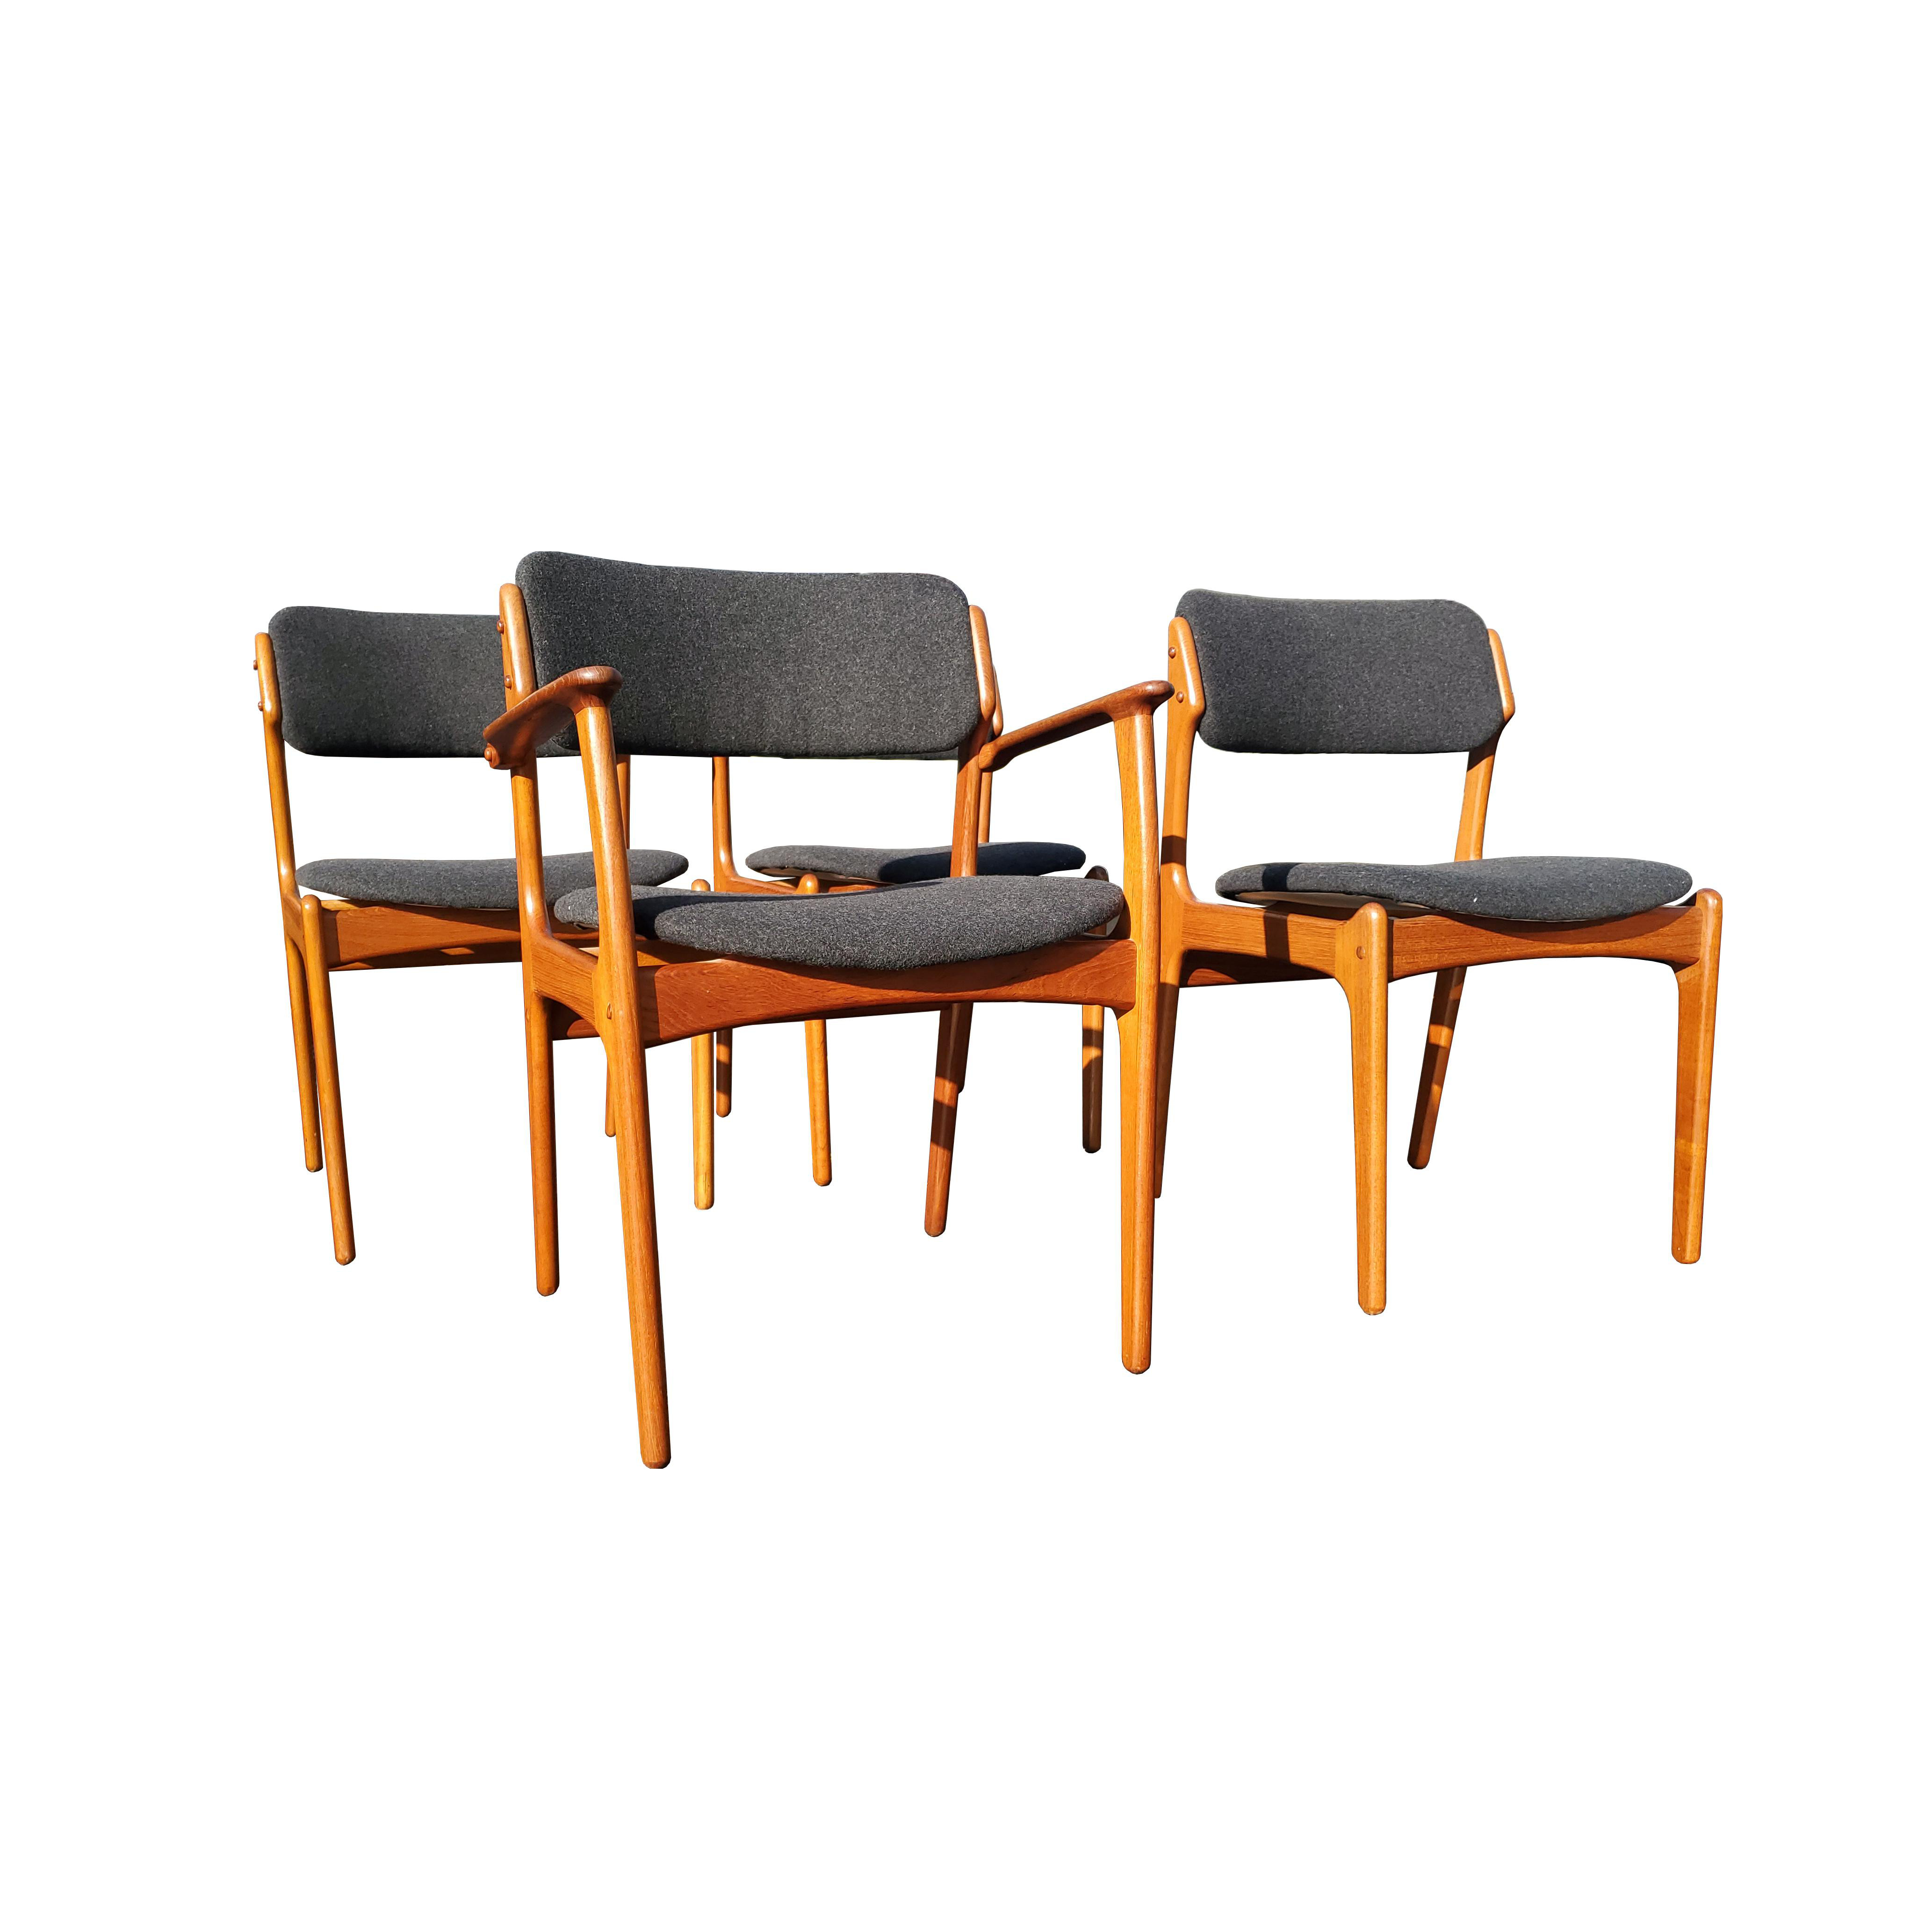 Mid Century Modern Bedroom Furniture Unique A Set Of 4 Erik Buch Danish Mid Century Modern Dining Chairs Model 49